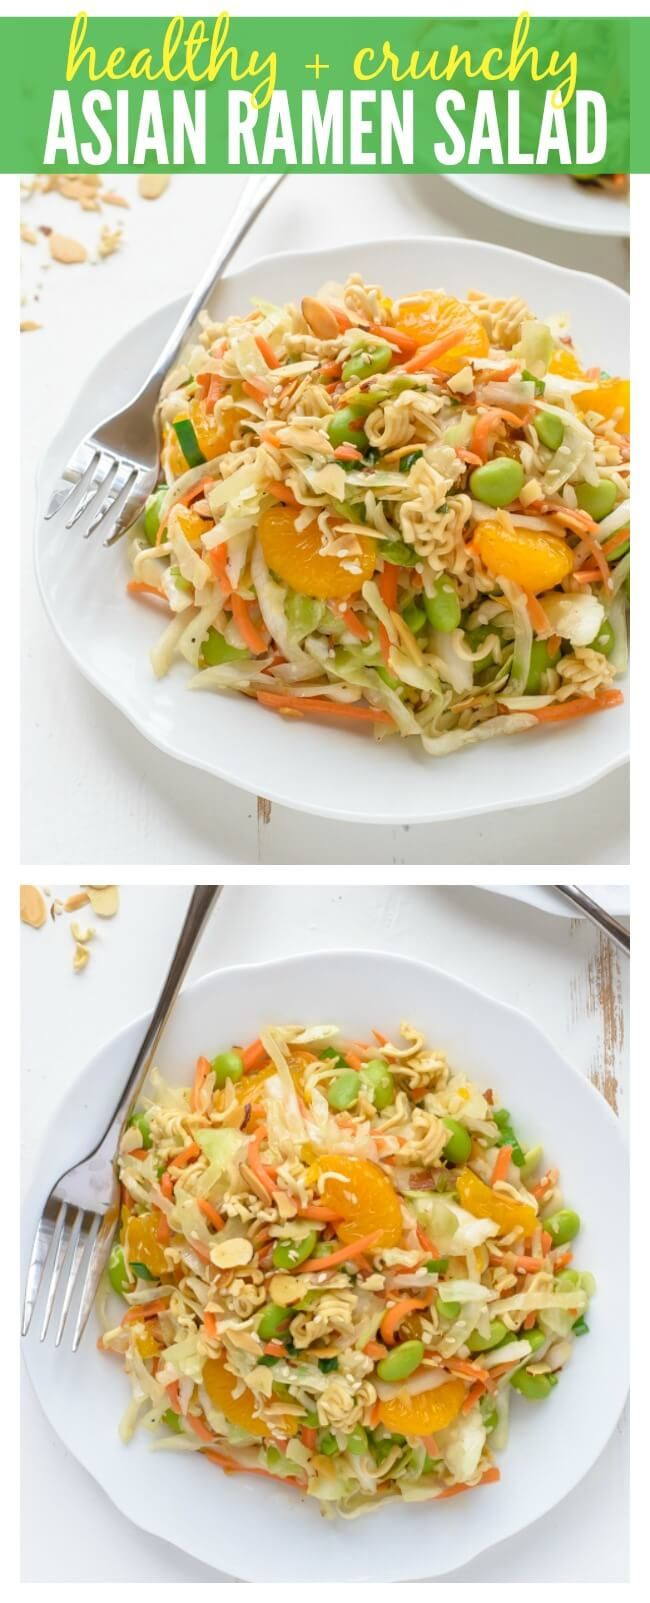 A healthy version of the classic Crunchy Asian Ramen Salad that's as good as the original but made from better ingredients! www.wellplated.com | @wellplated